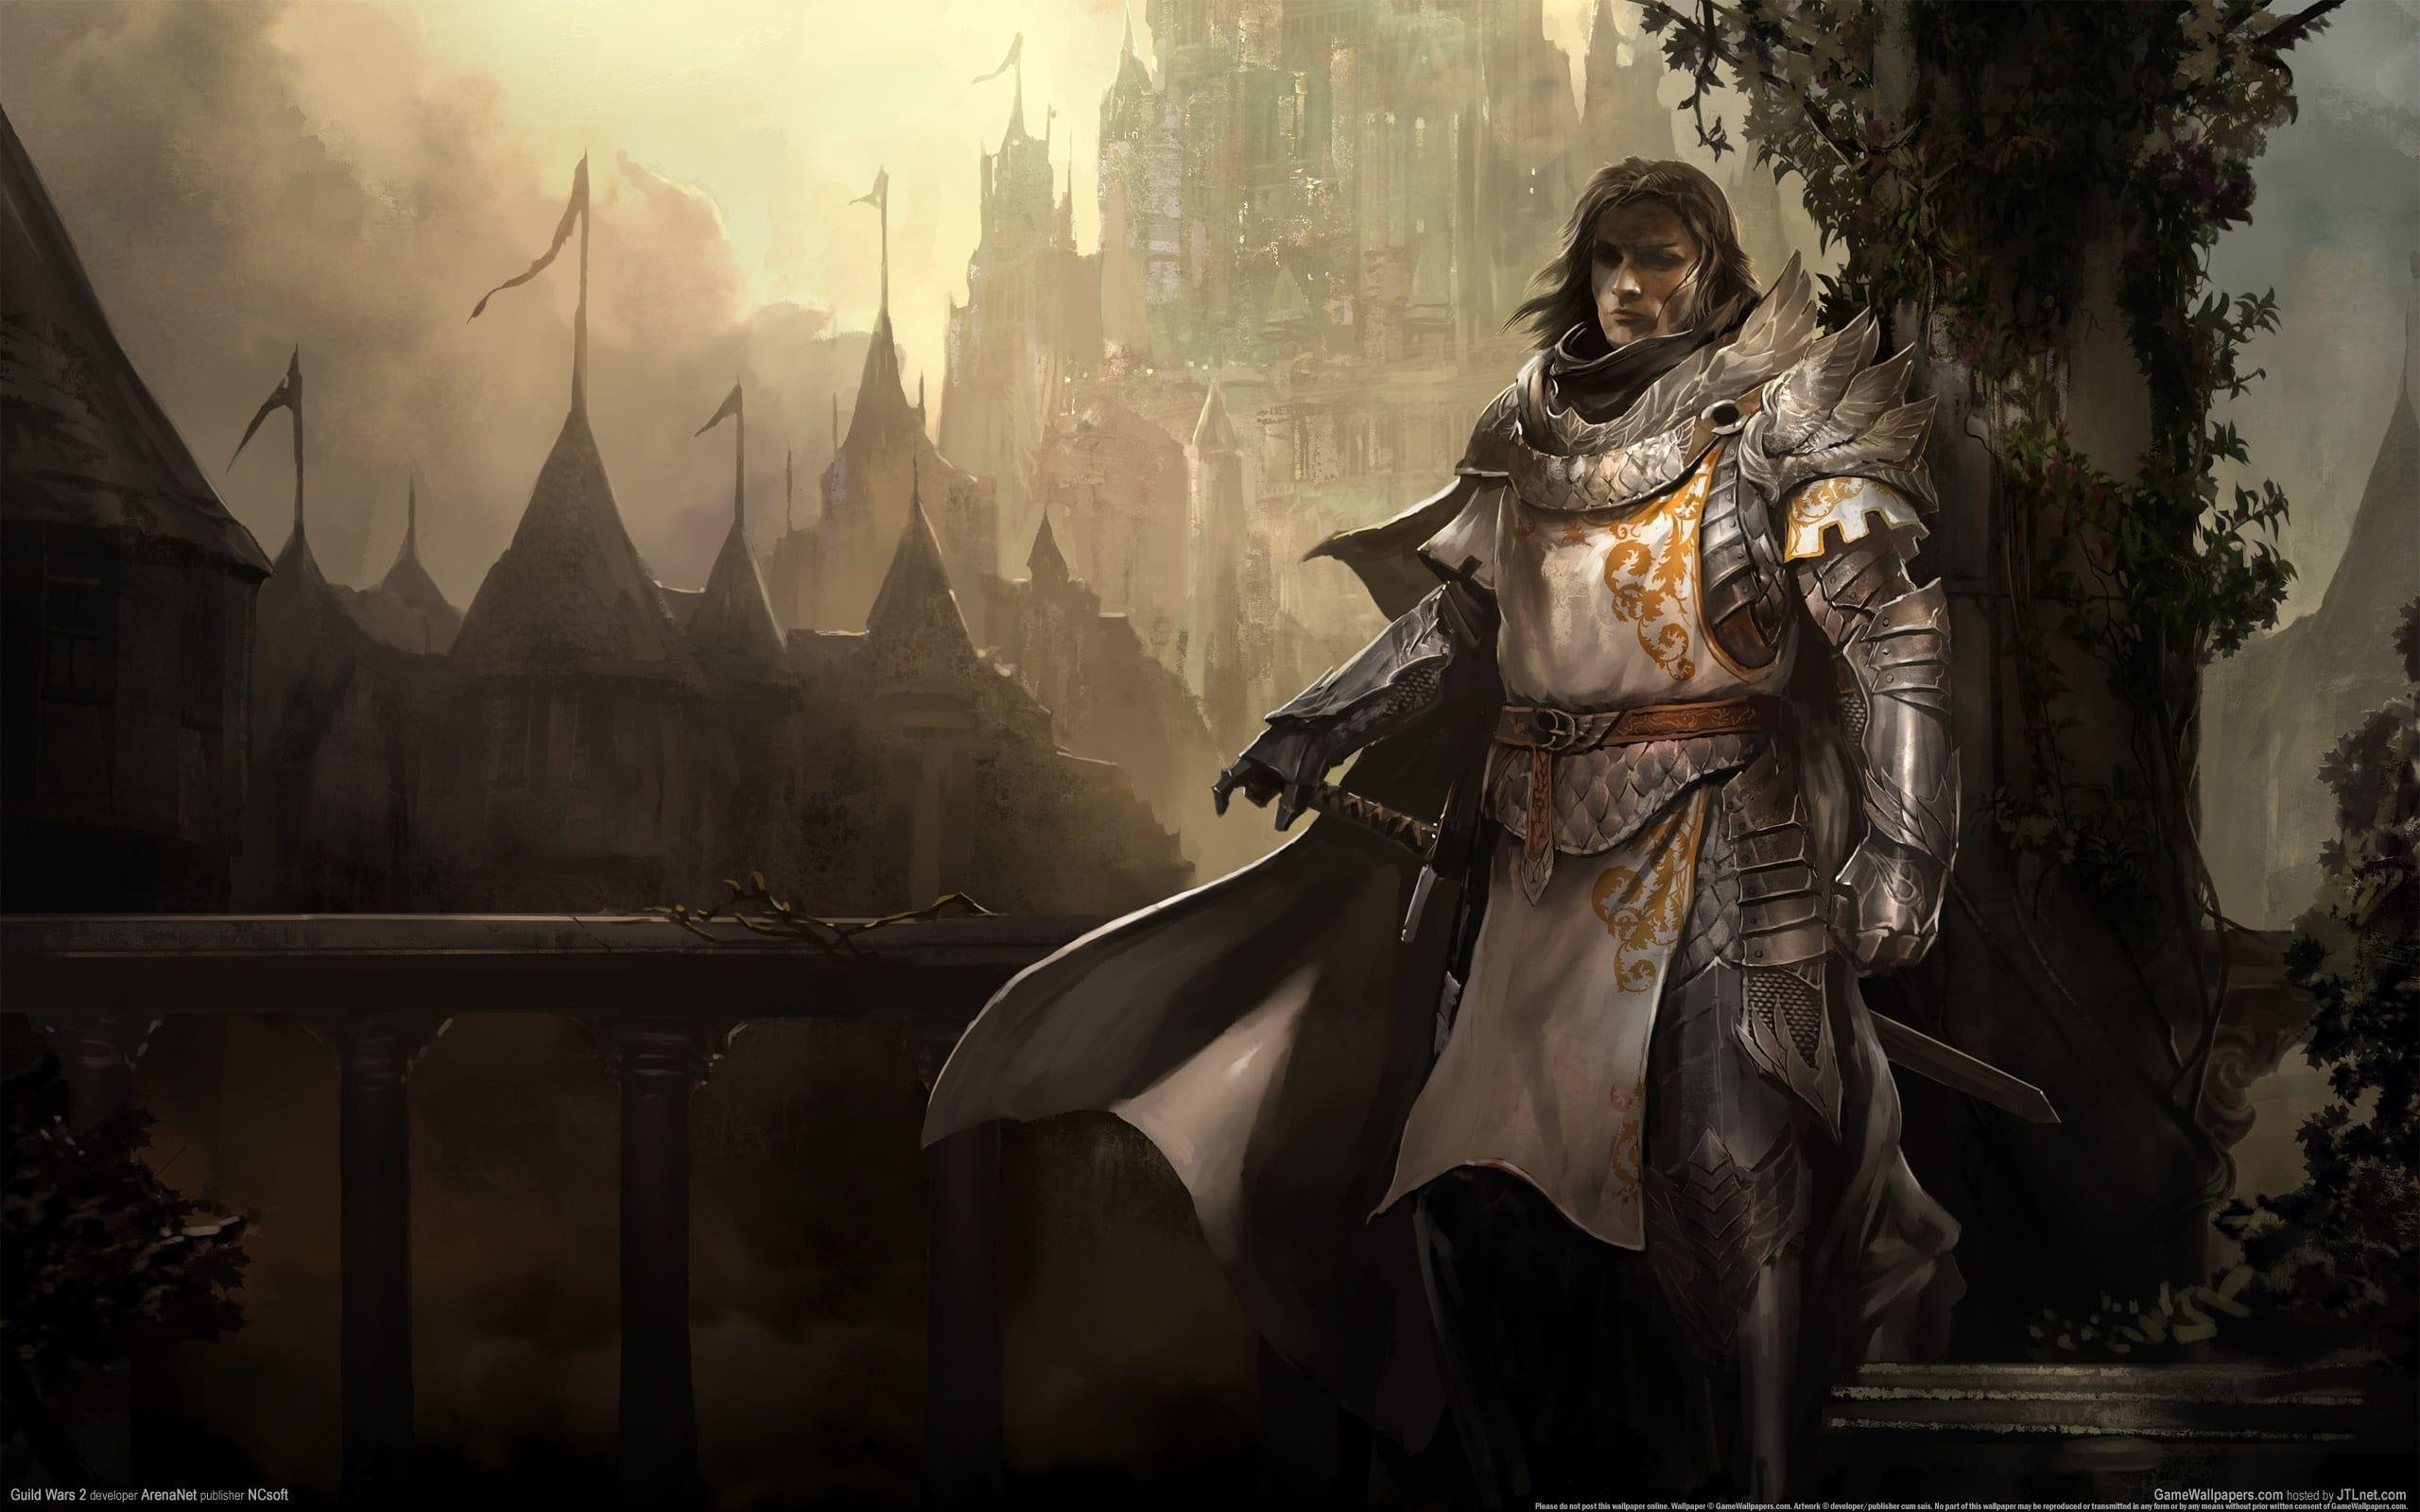 Crusader with armor on terrace game illustration HD wallpapers